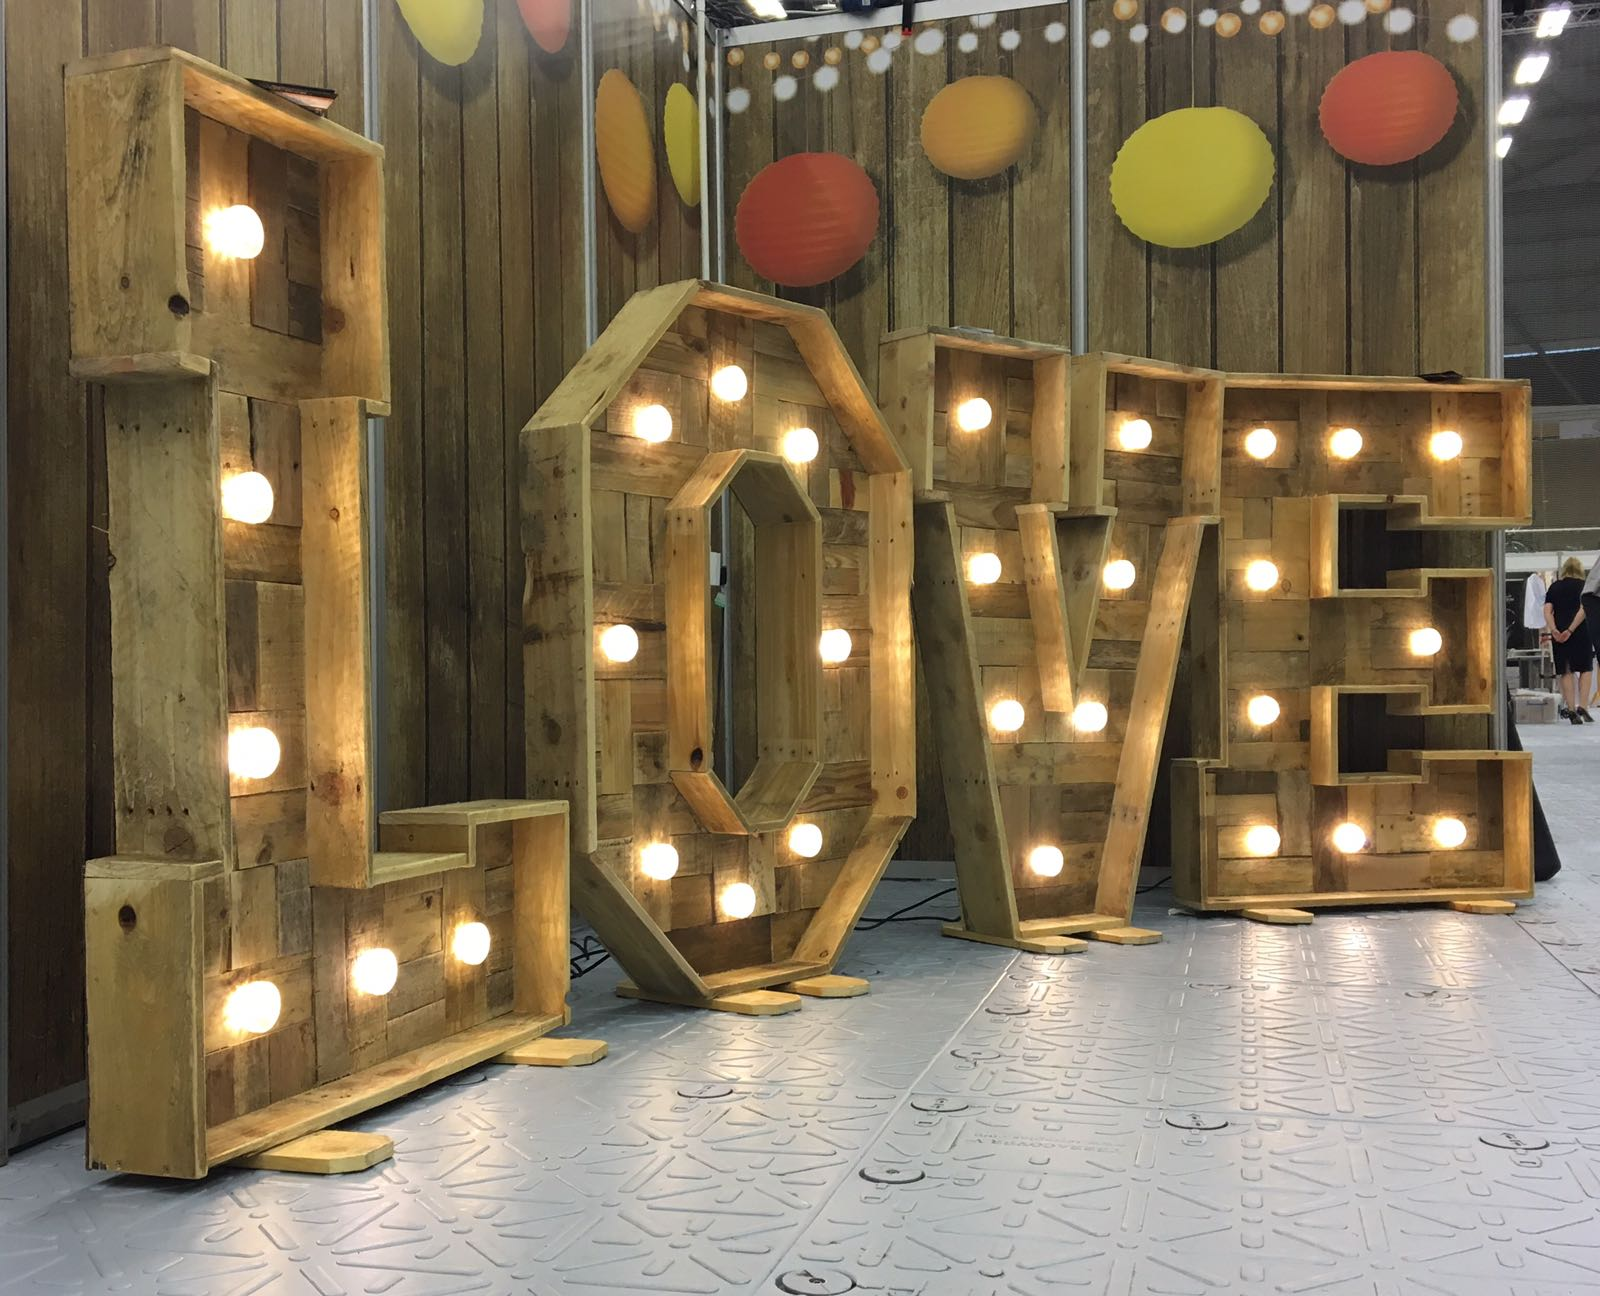 Light Up Rustic Love Letters Vintage Wooden Look Love Letters